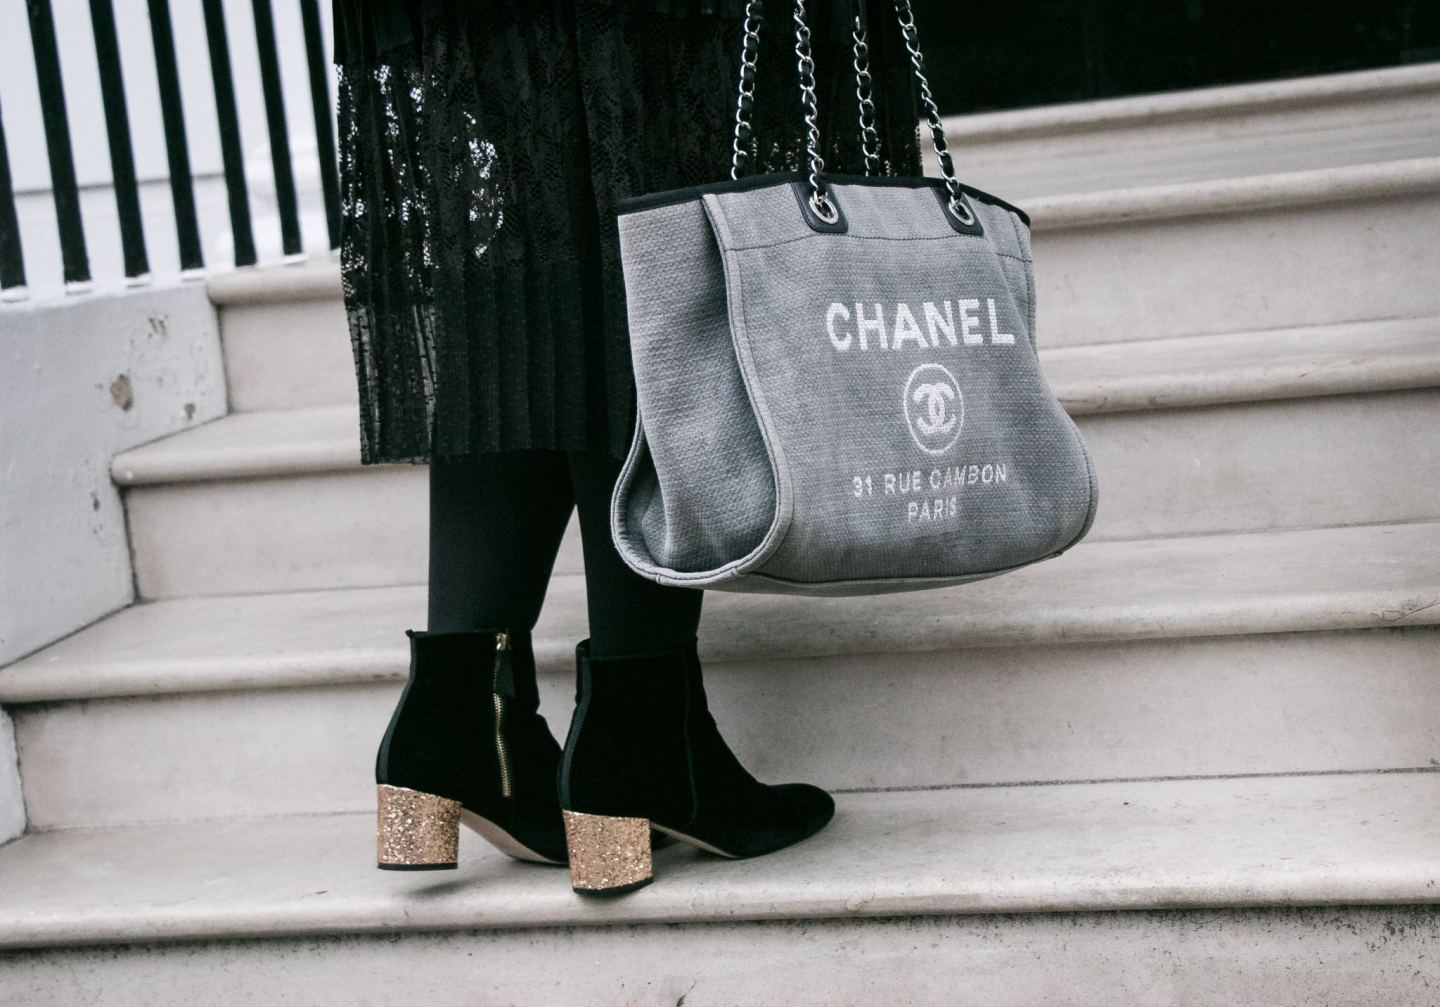 1f0ff98ba3da Shopping  Why The Chanel Canvas Tote Bag Should Be Your Next Chanel ...